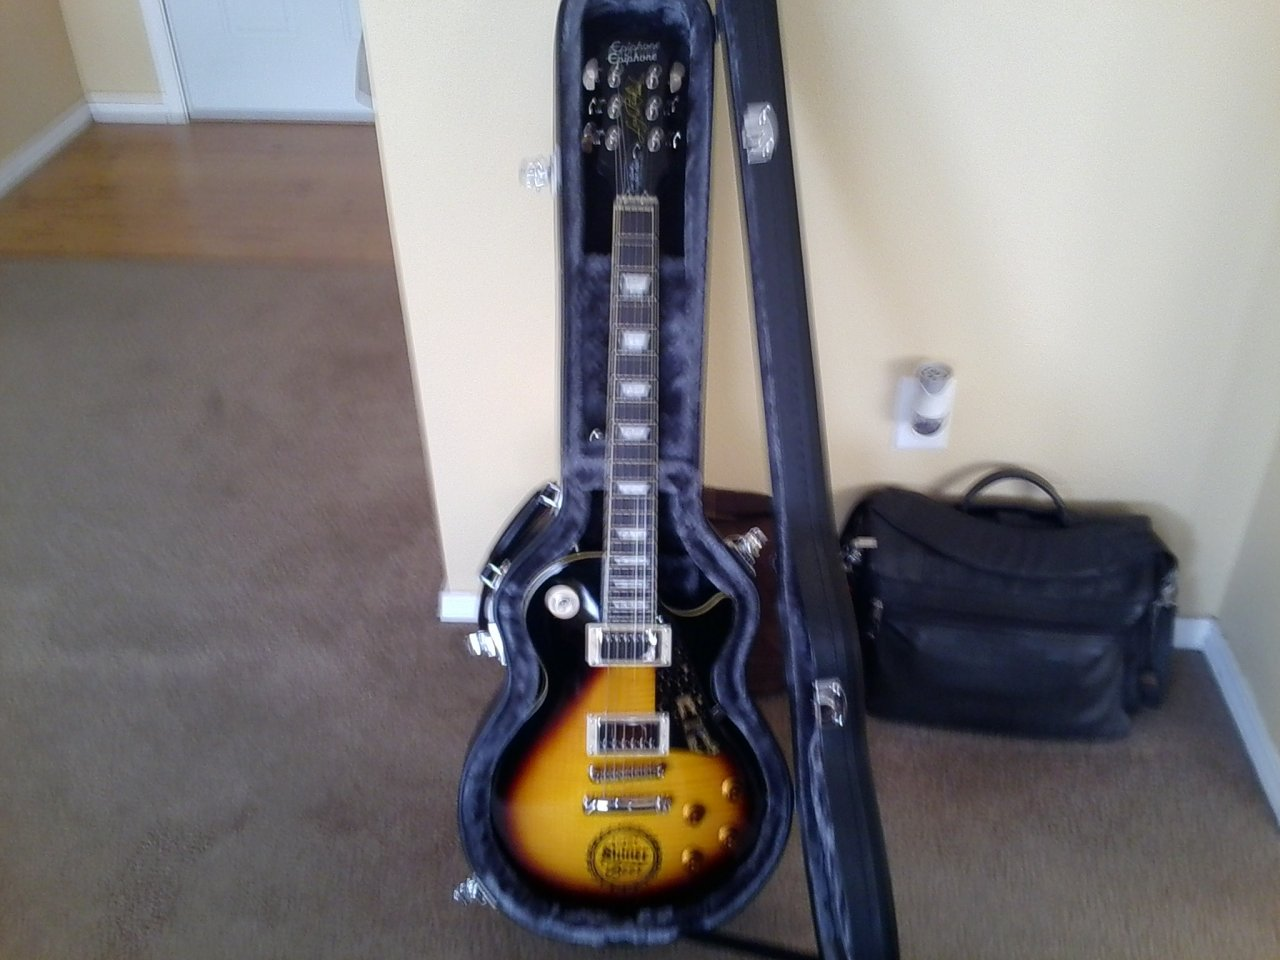 Epiphone Shiner Bock Full